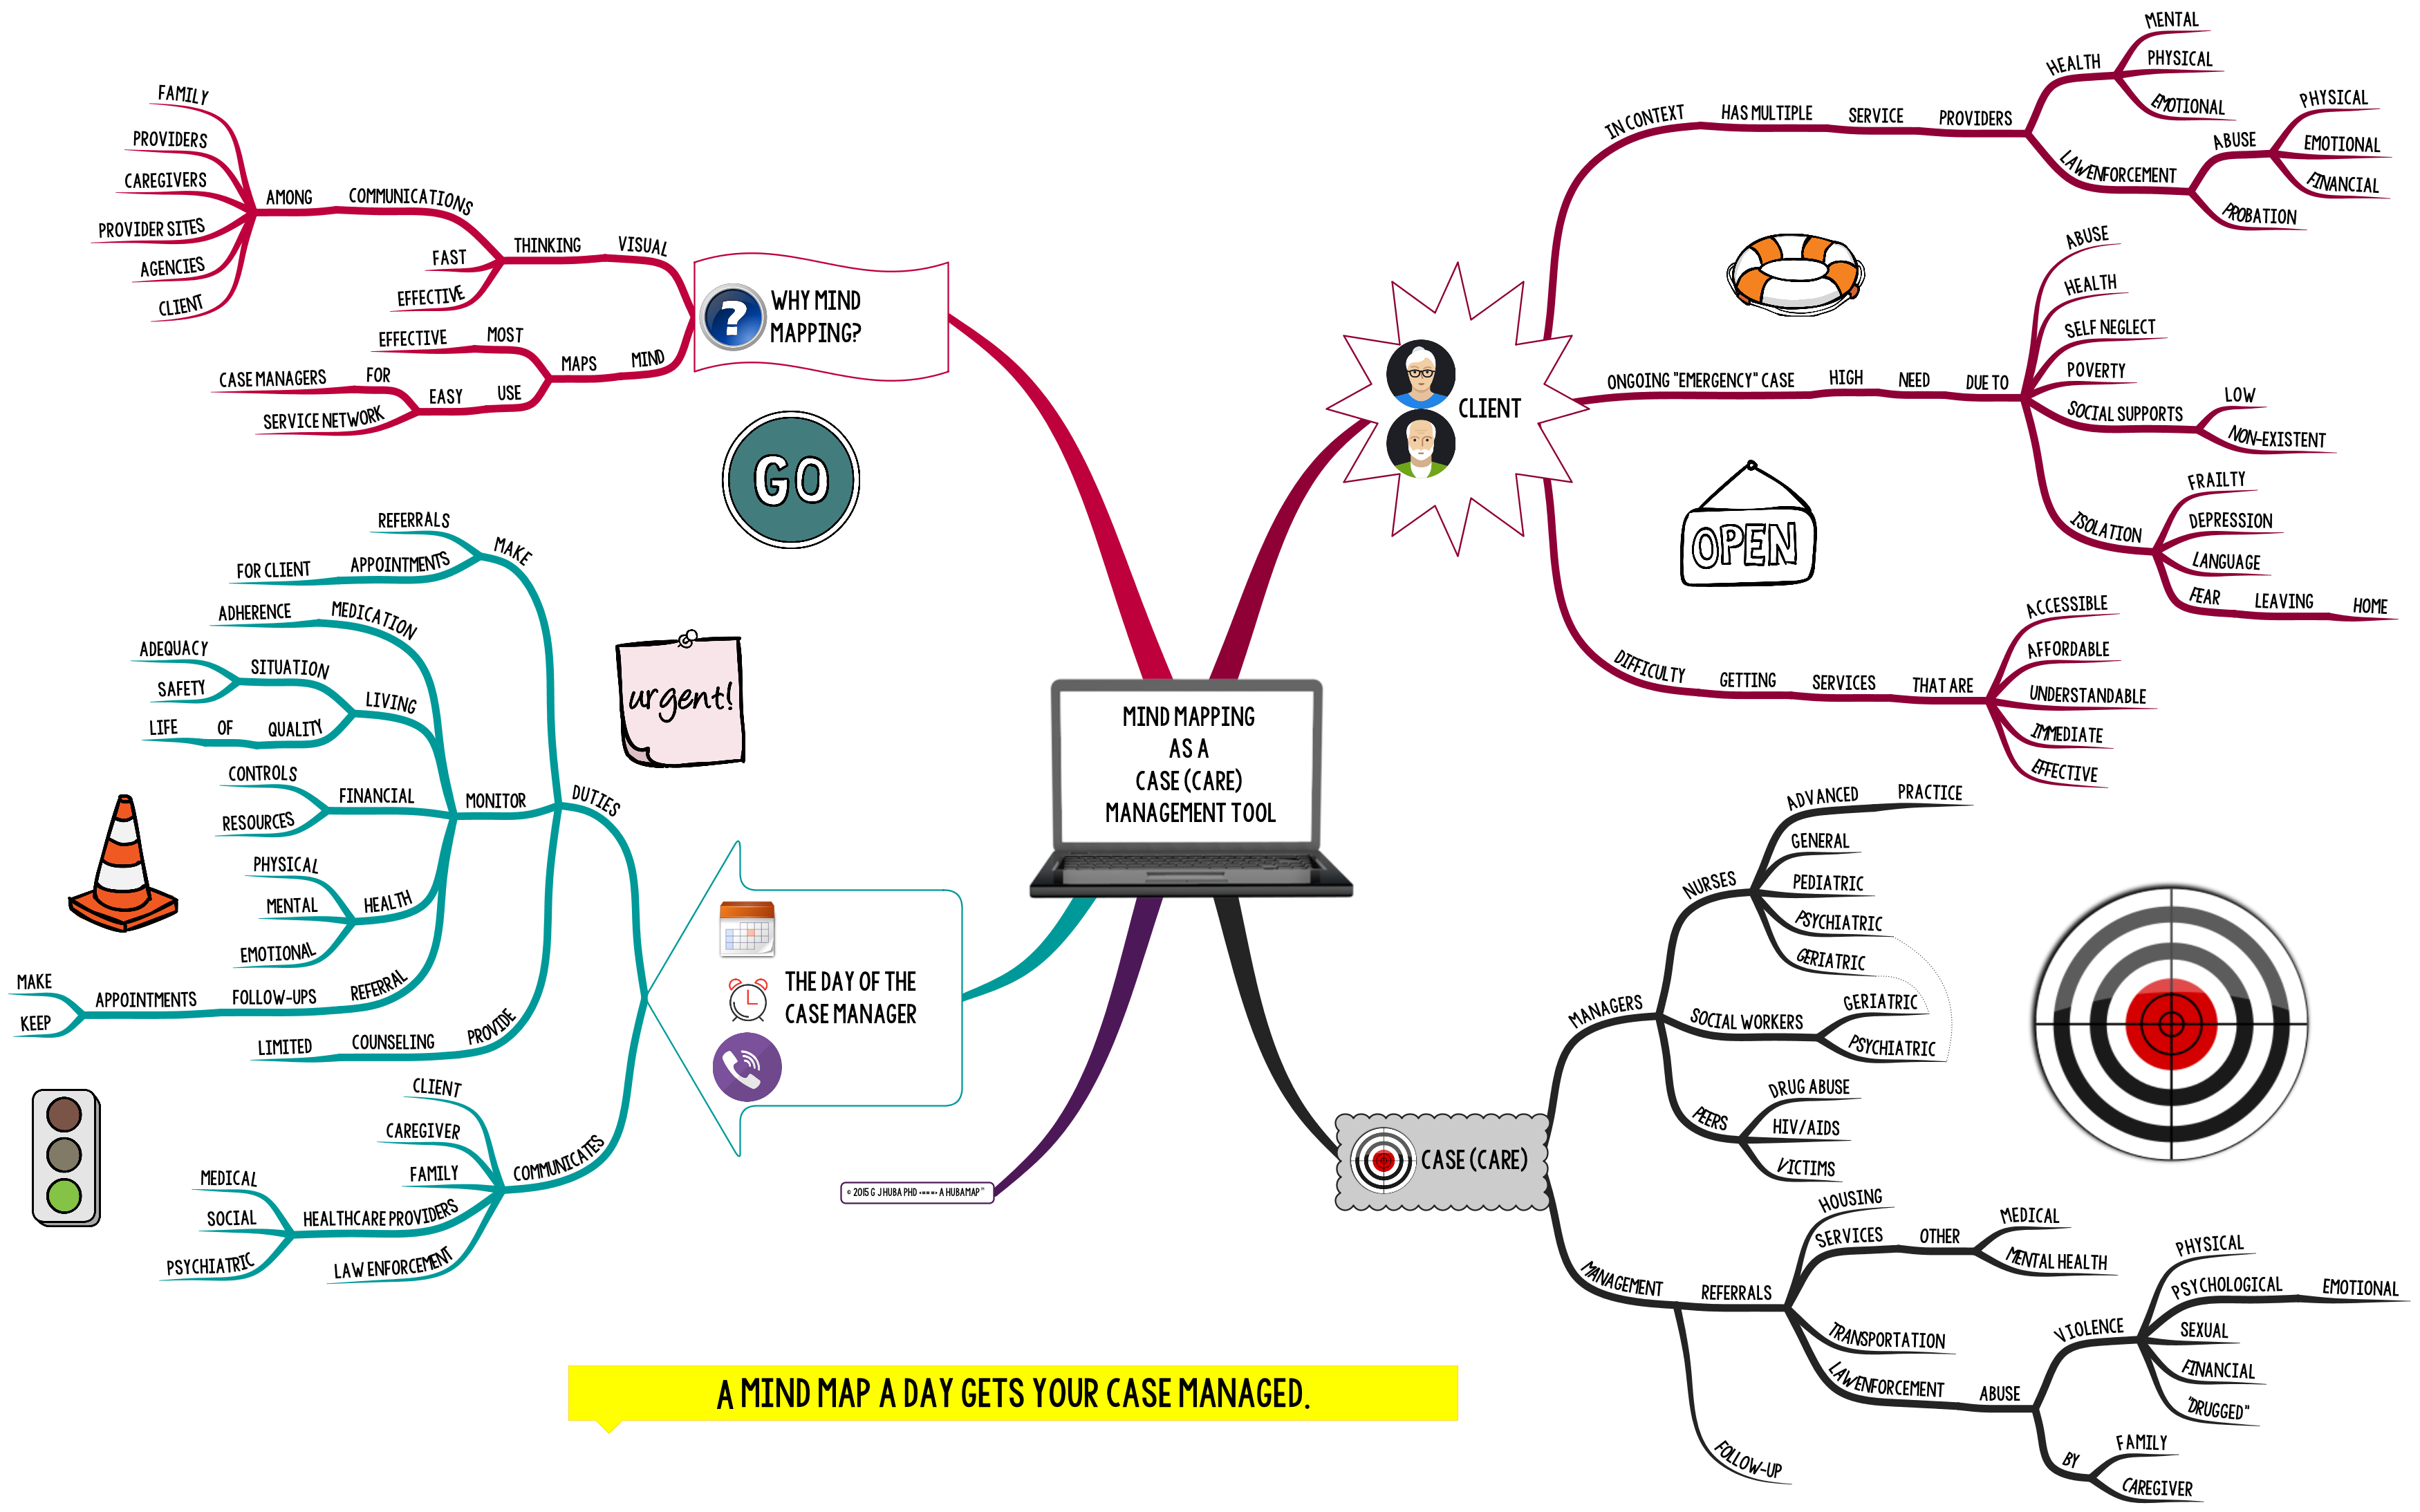 MIND MAPPING AS A CASE (CARE) MANAGEMENT TOOL